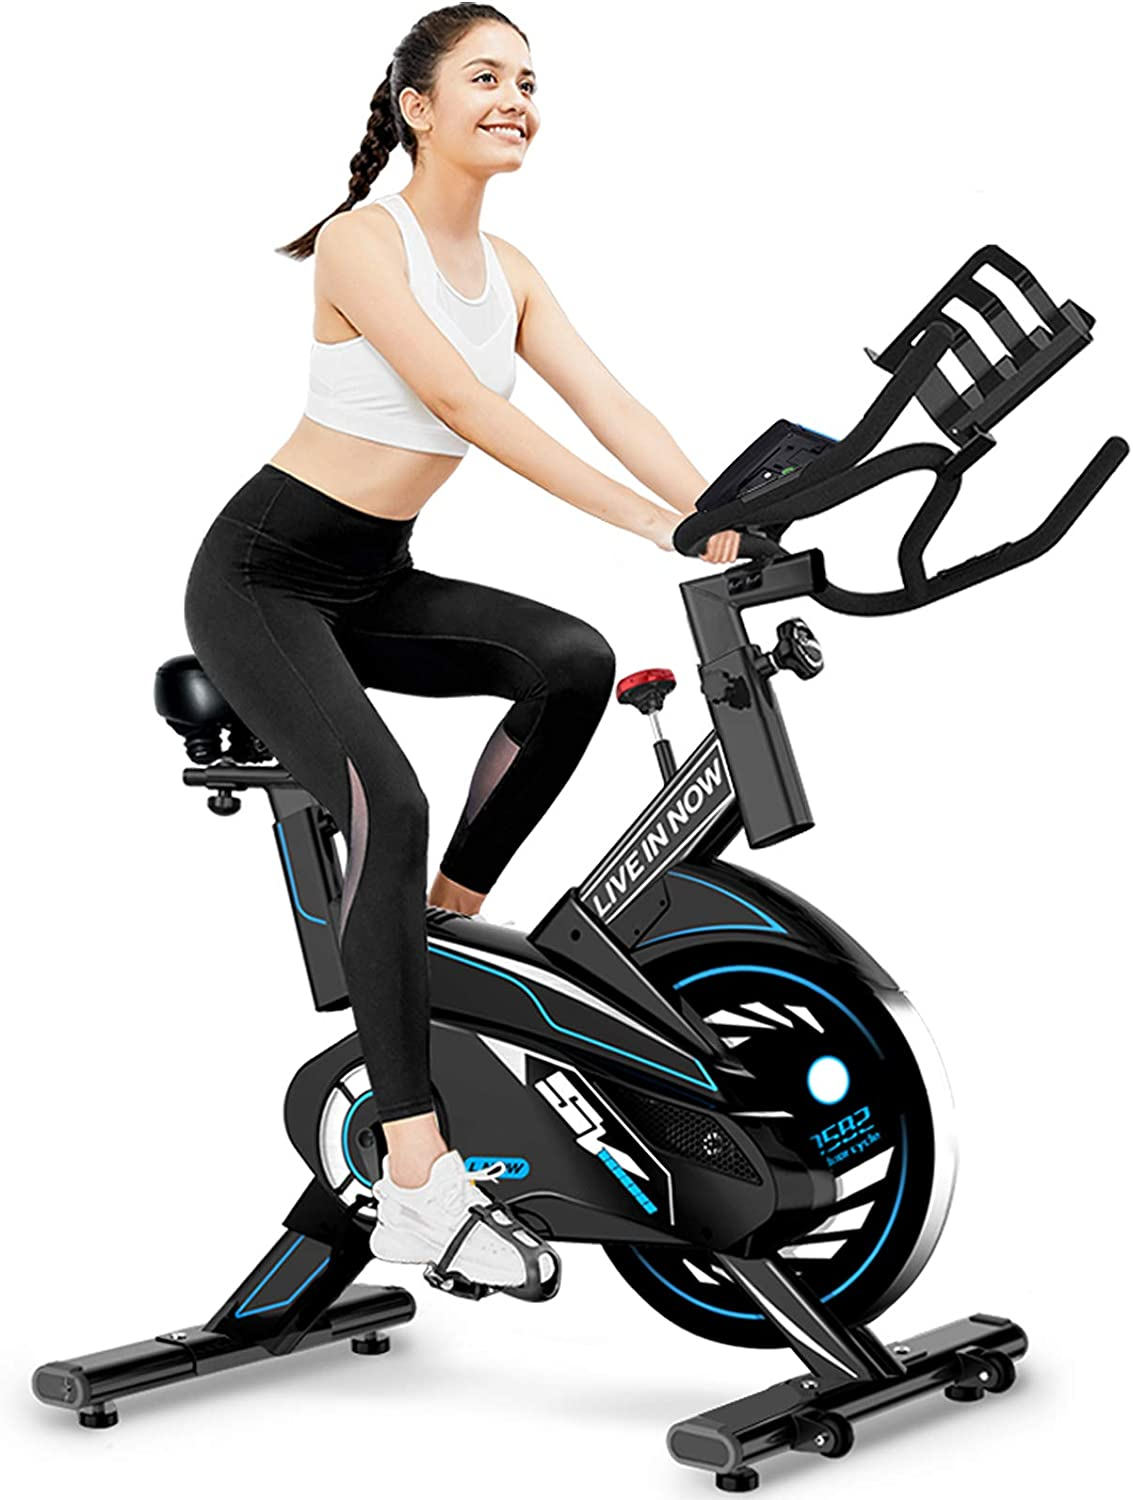 L NOW Indoor Exercise Bike Stationary, Belt Drive Indoor Cycling Bike for Home Office Cardio Workout Bike TrainingMax 350Ibs With Wire to Connect Phone